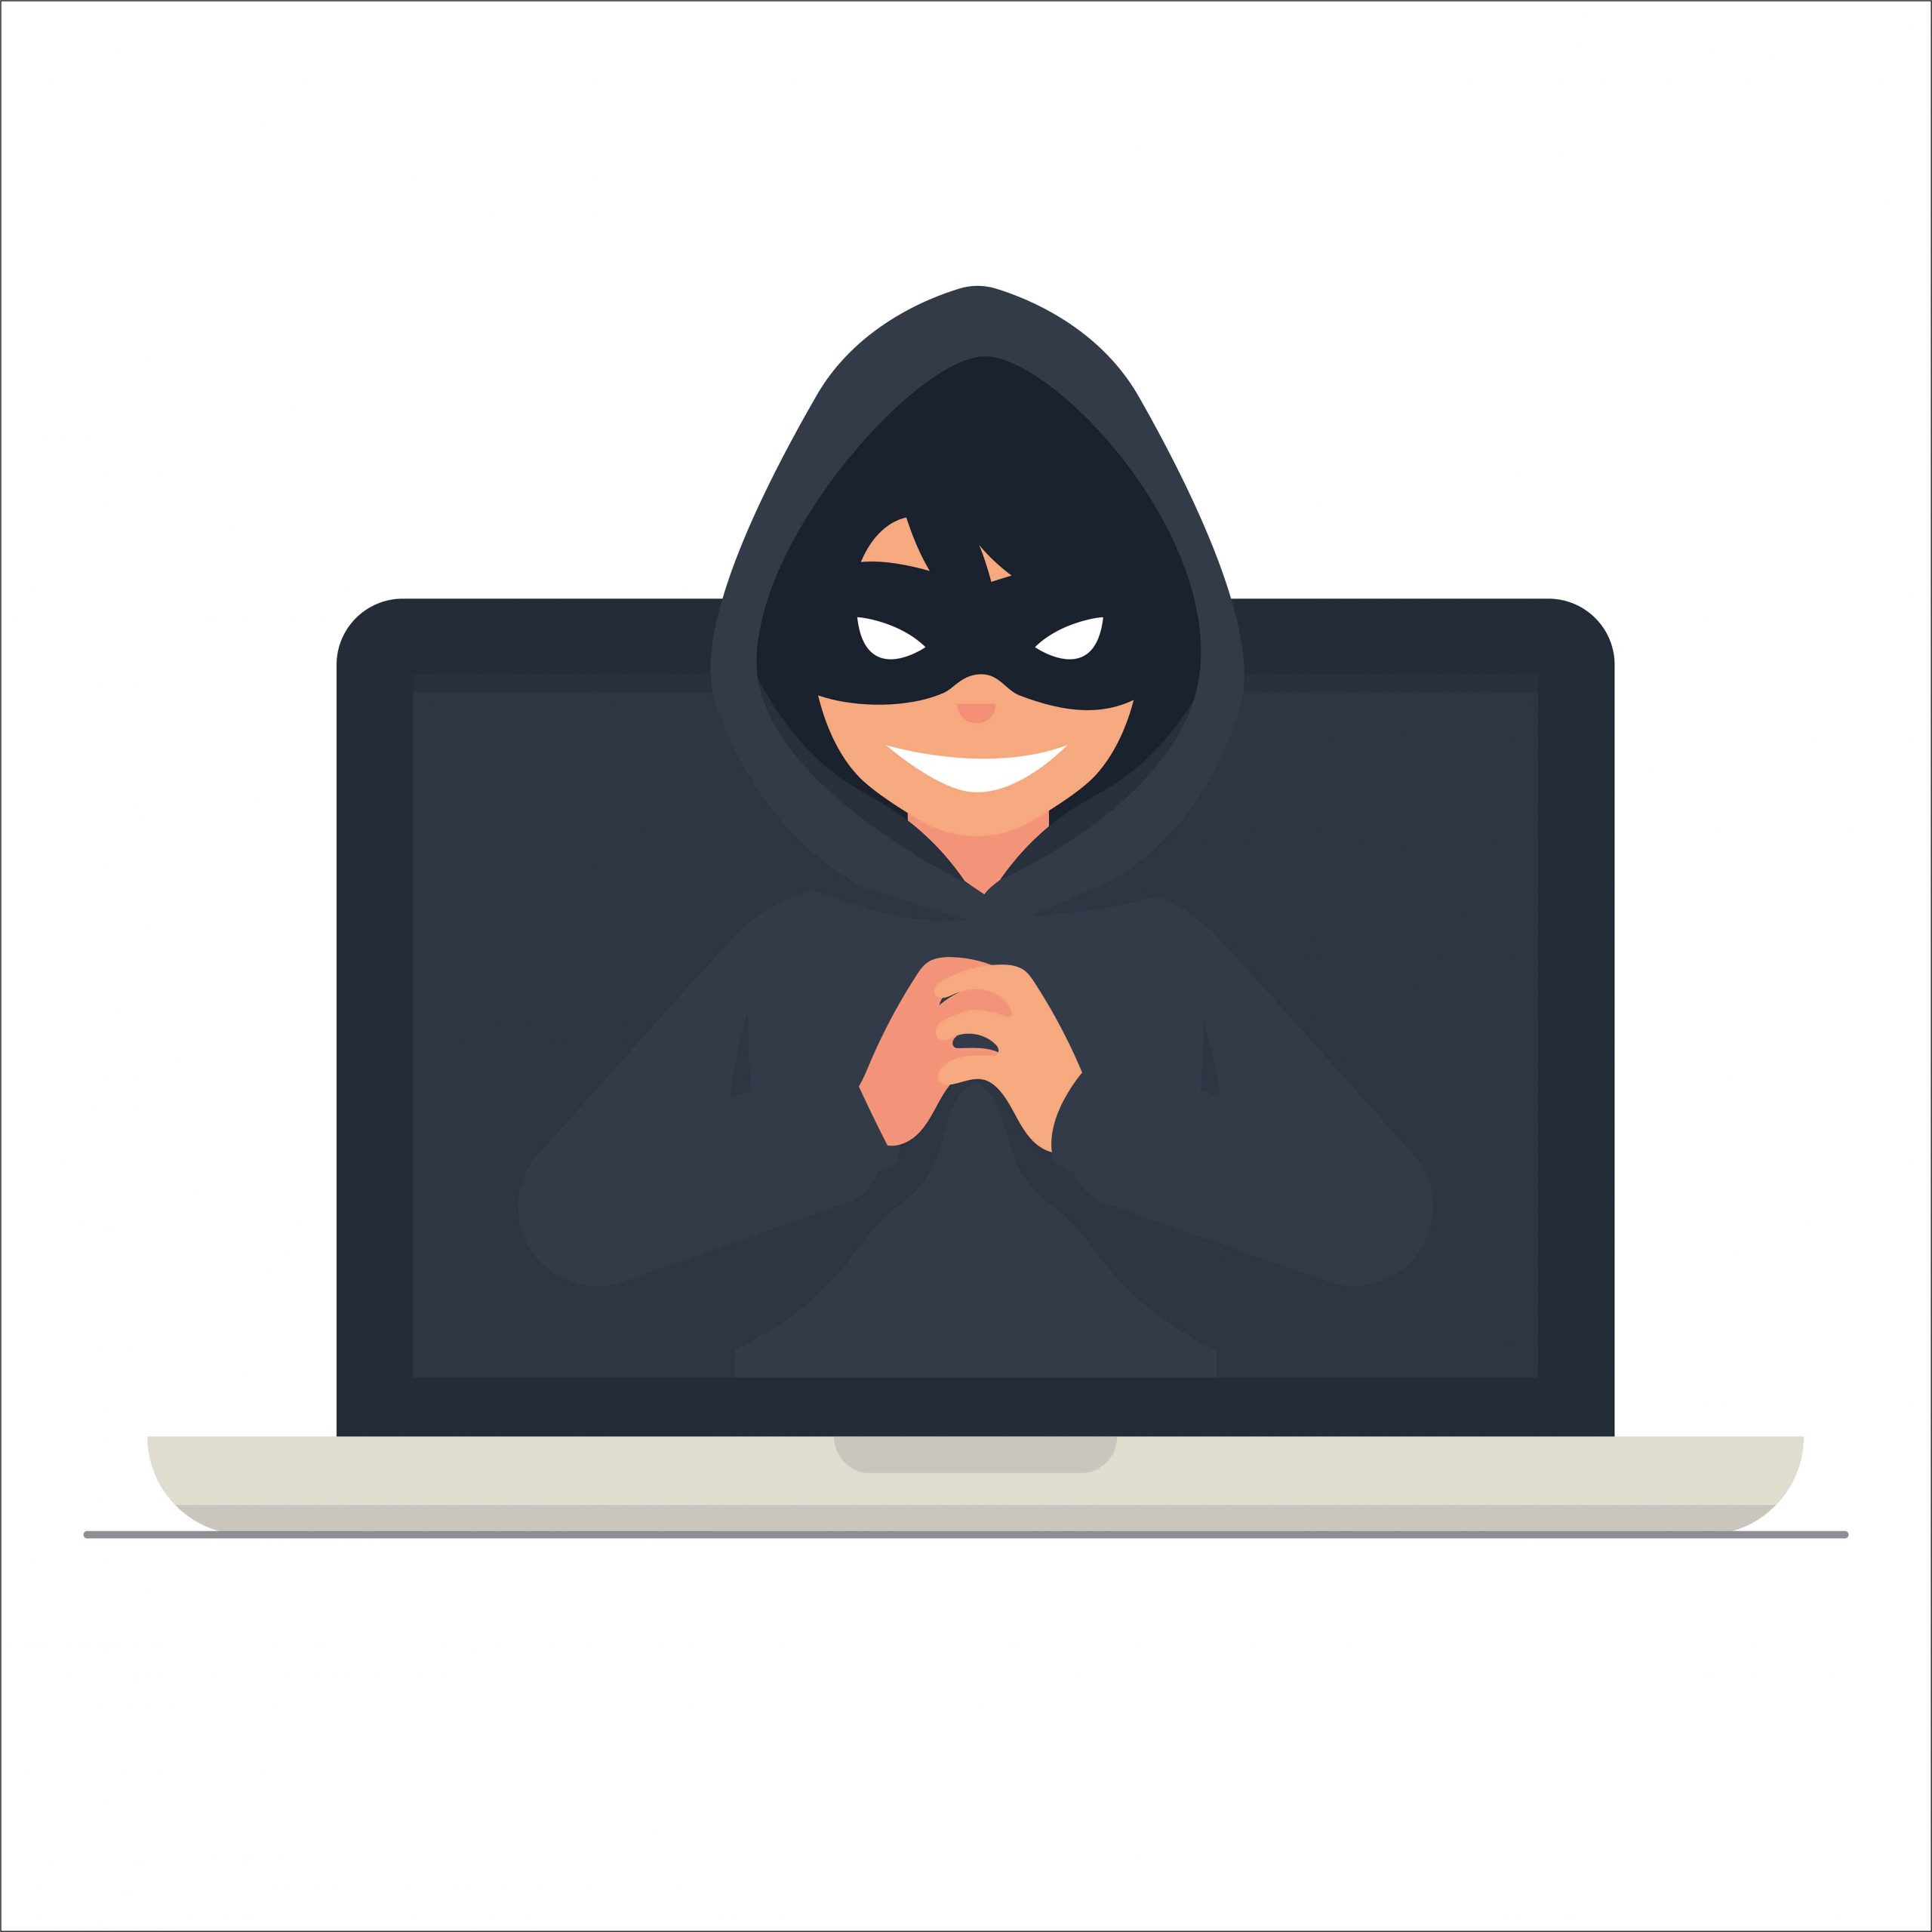 Email spoofing: how attackers impersonate legitimate senders